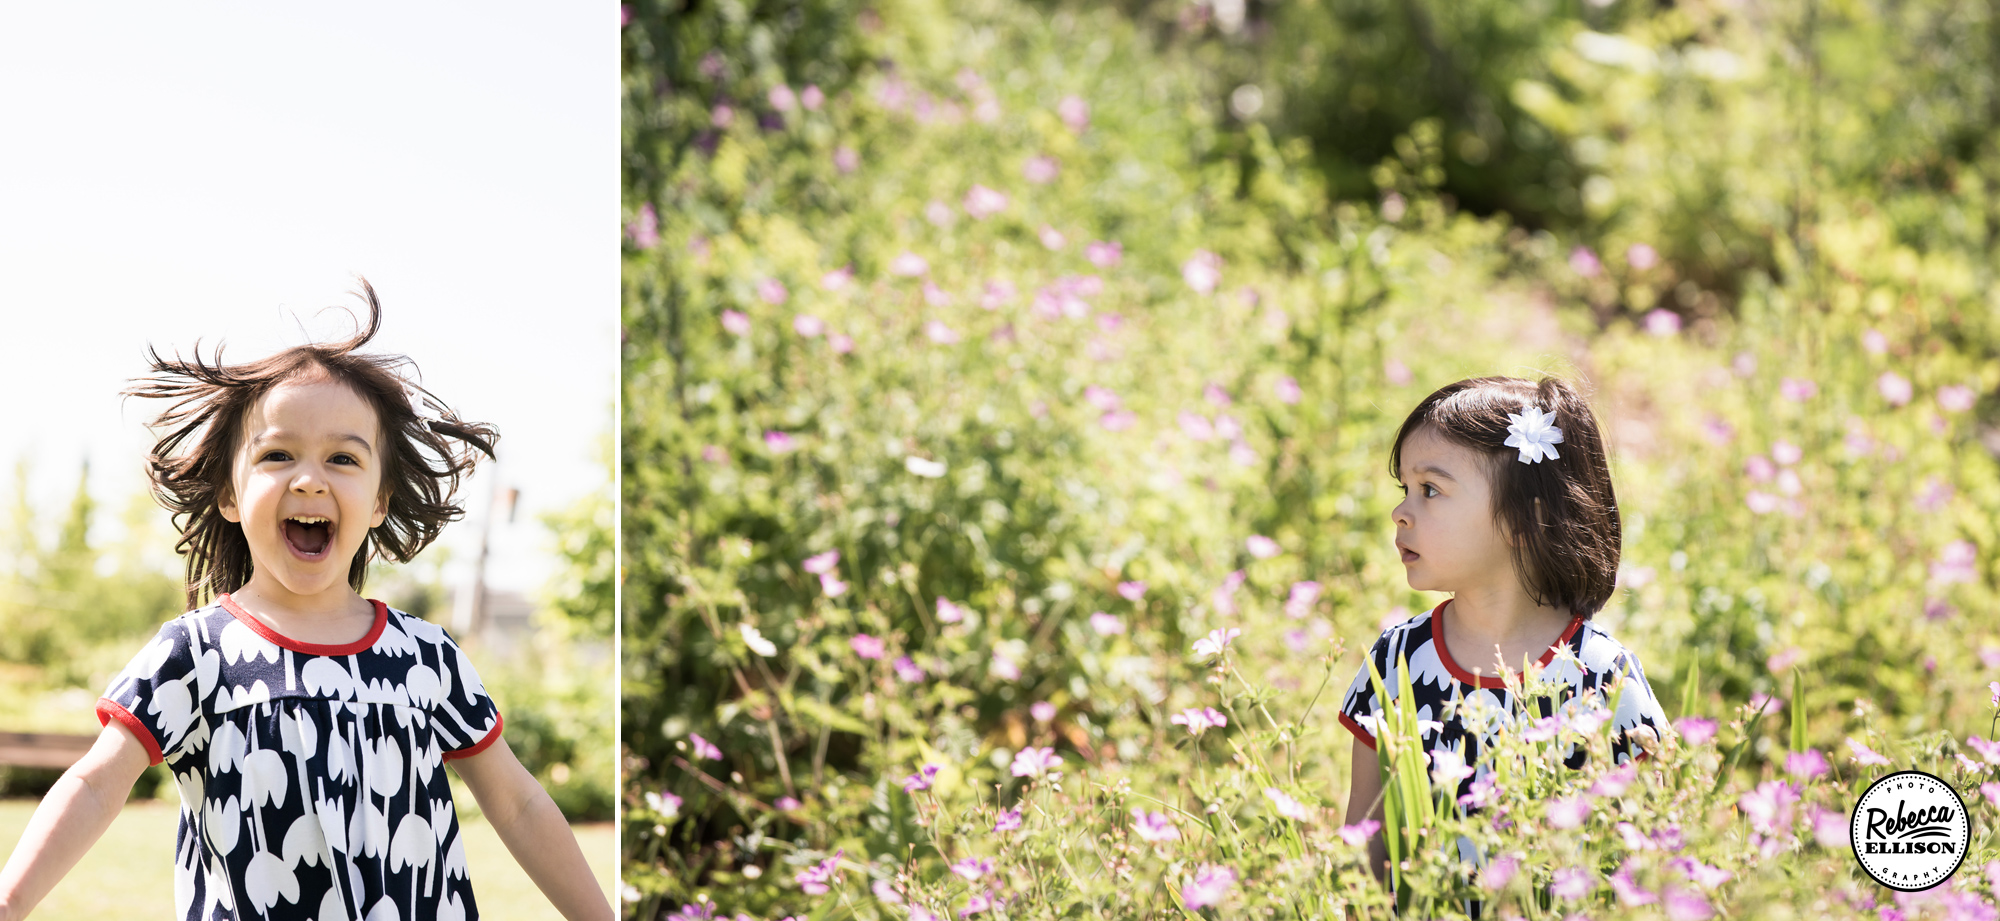 A little girl plays in the sunshine and walks through tall grass during outdoor family portraits by Kirkland family photographer Rebecca Ellison